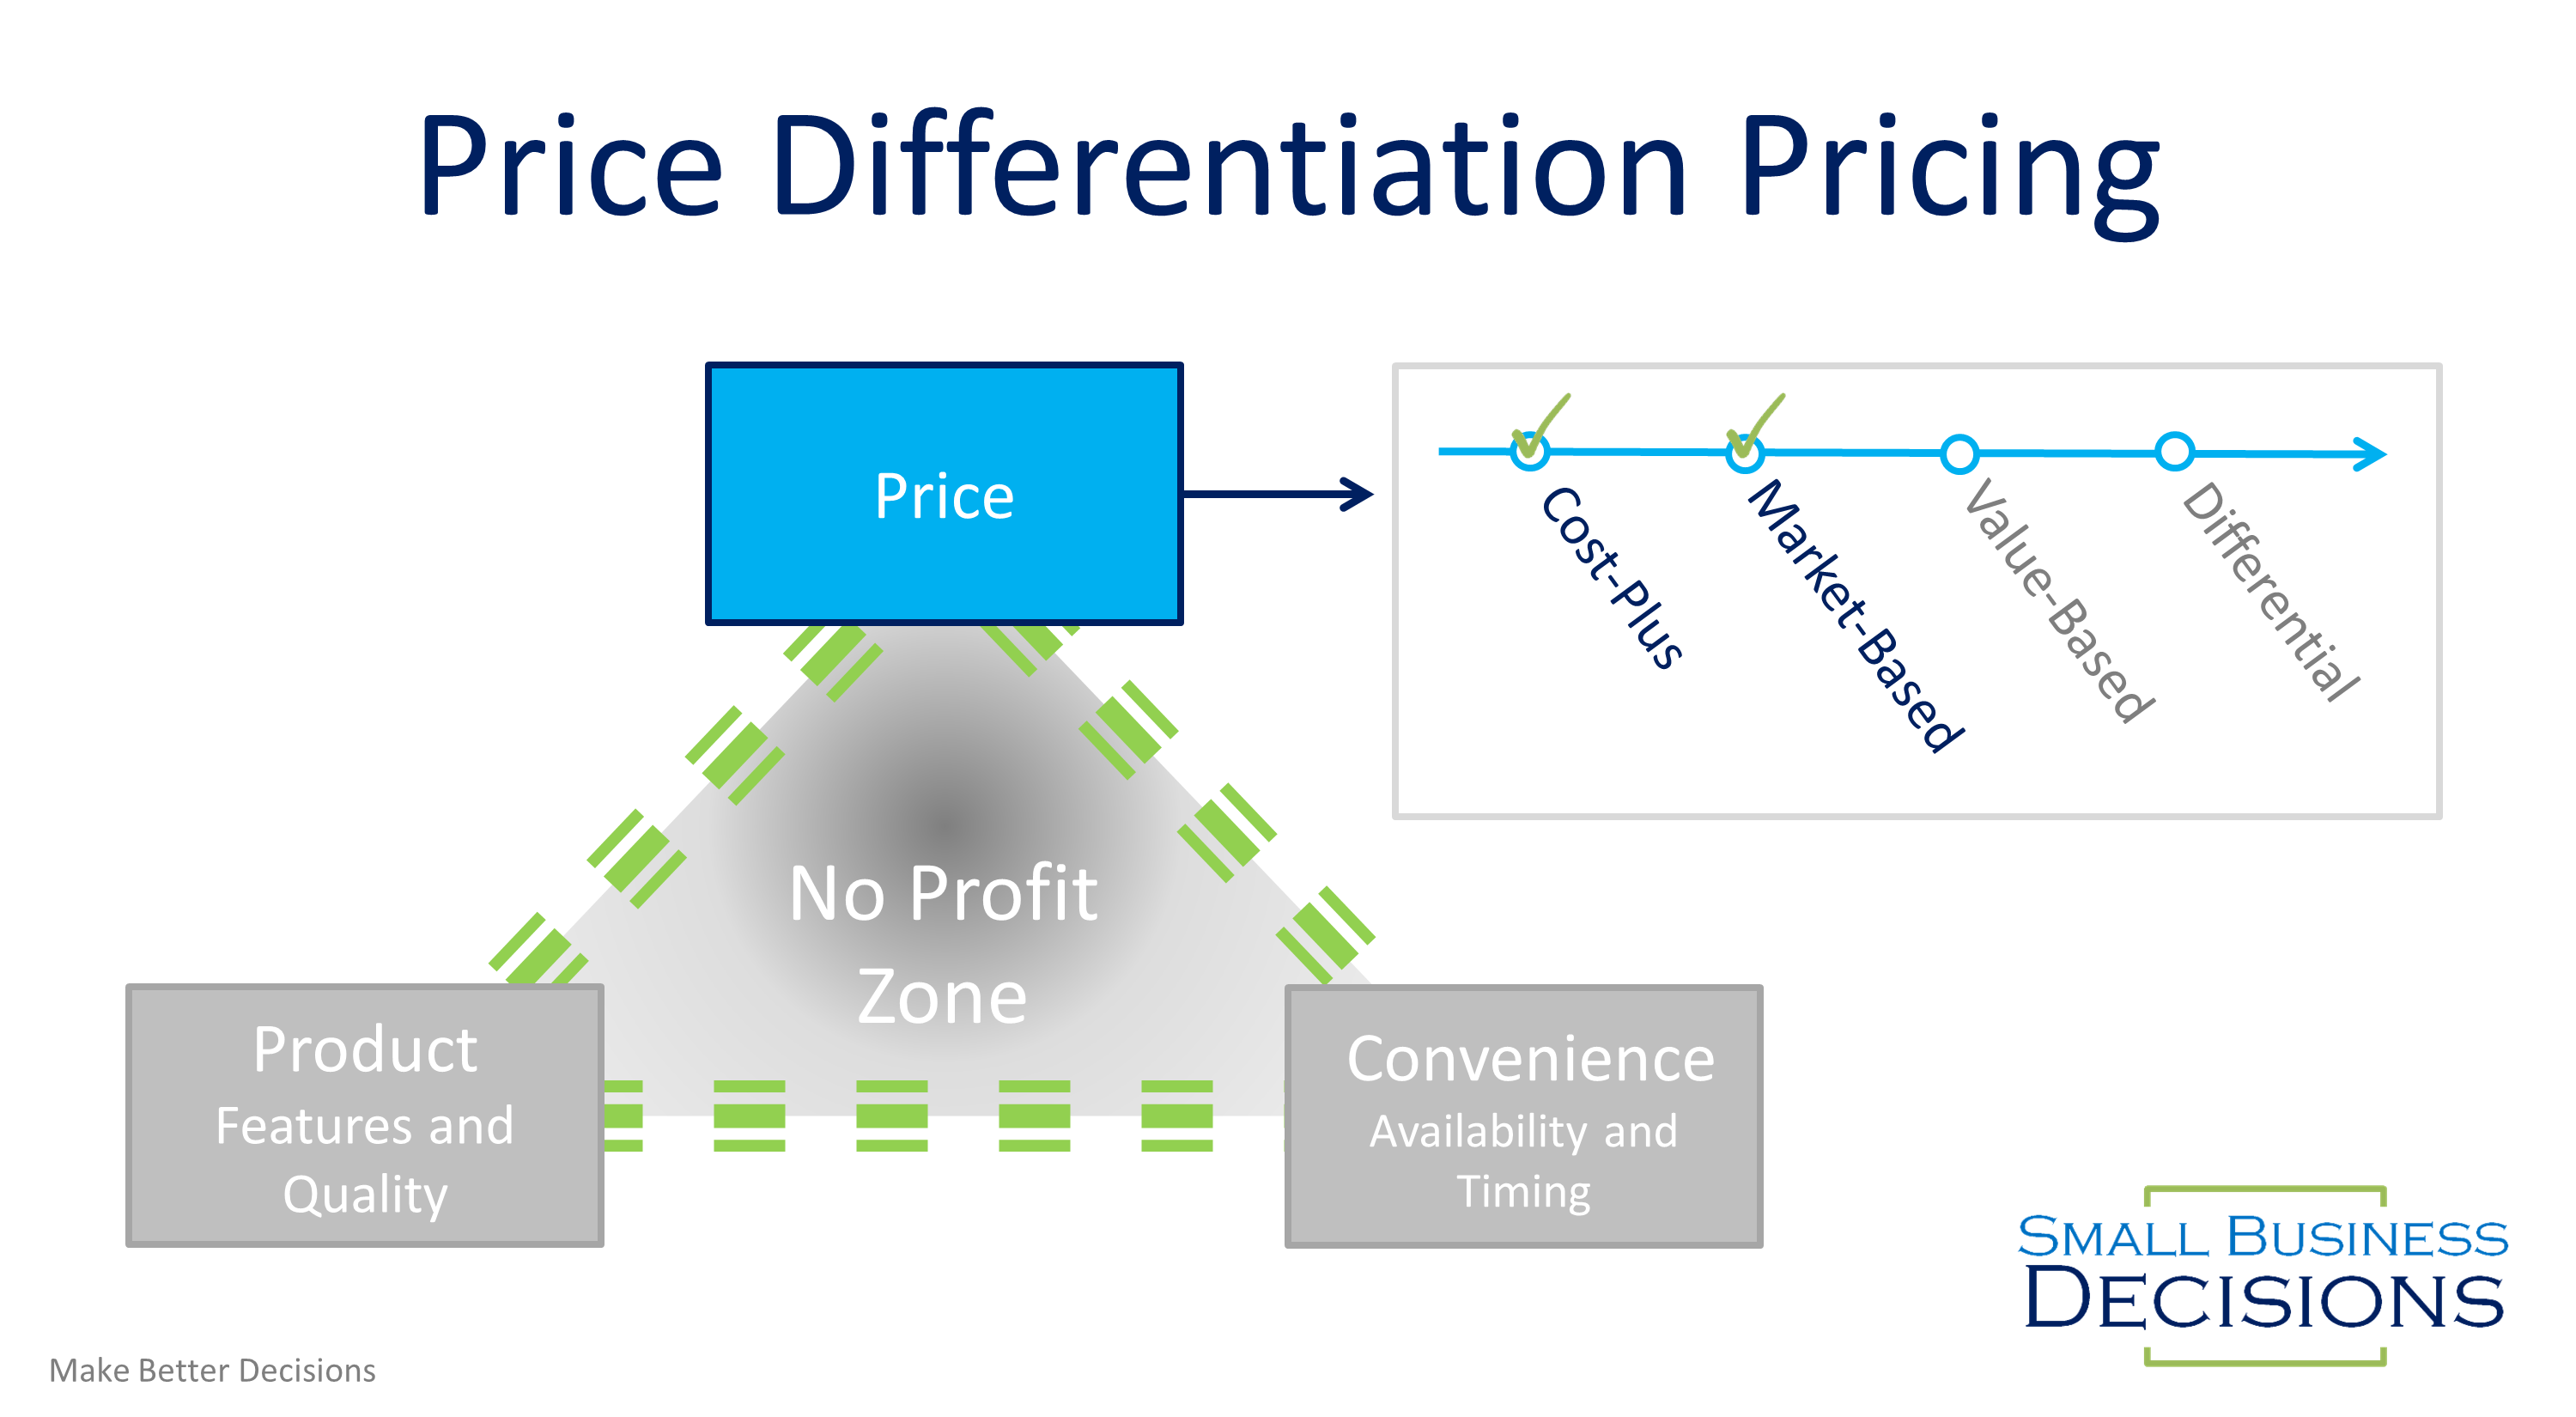 Price Differentiation Pricing Roadmap